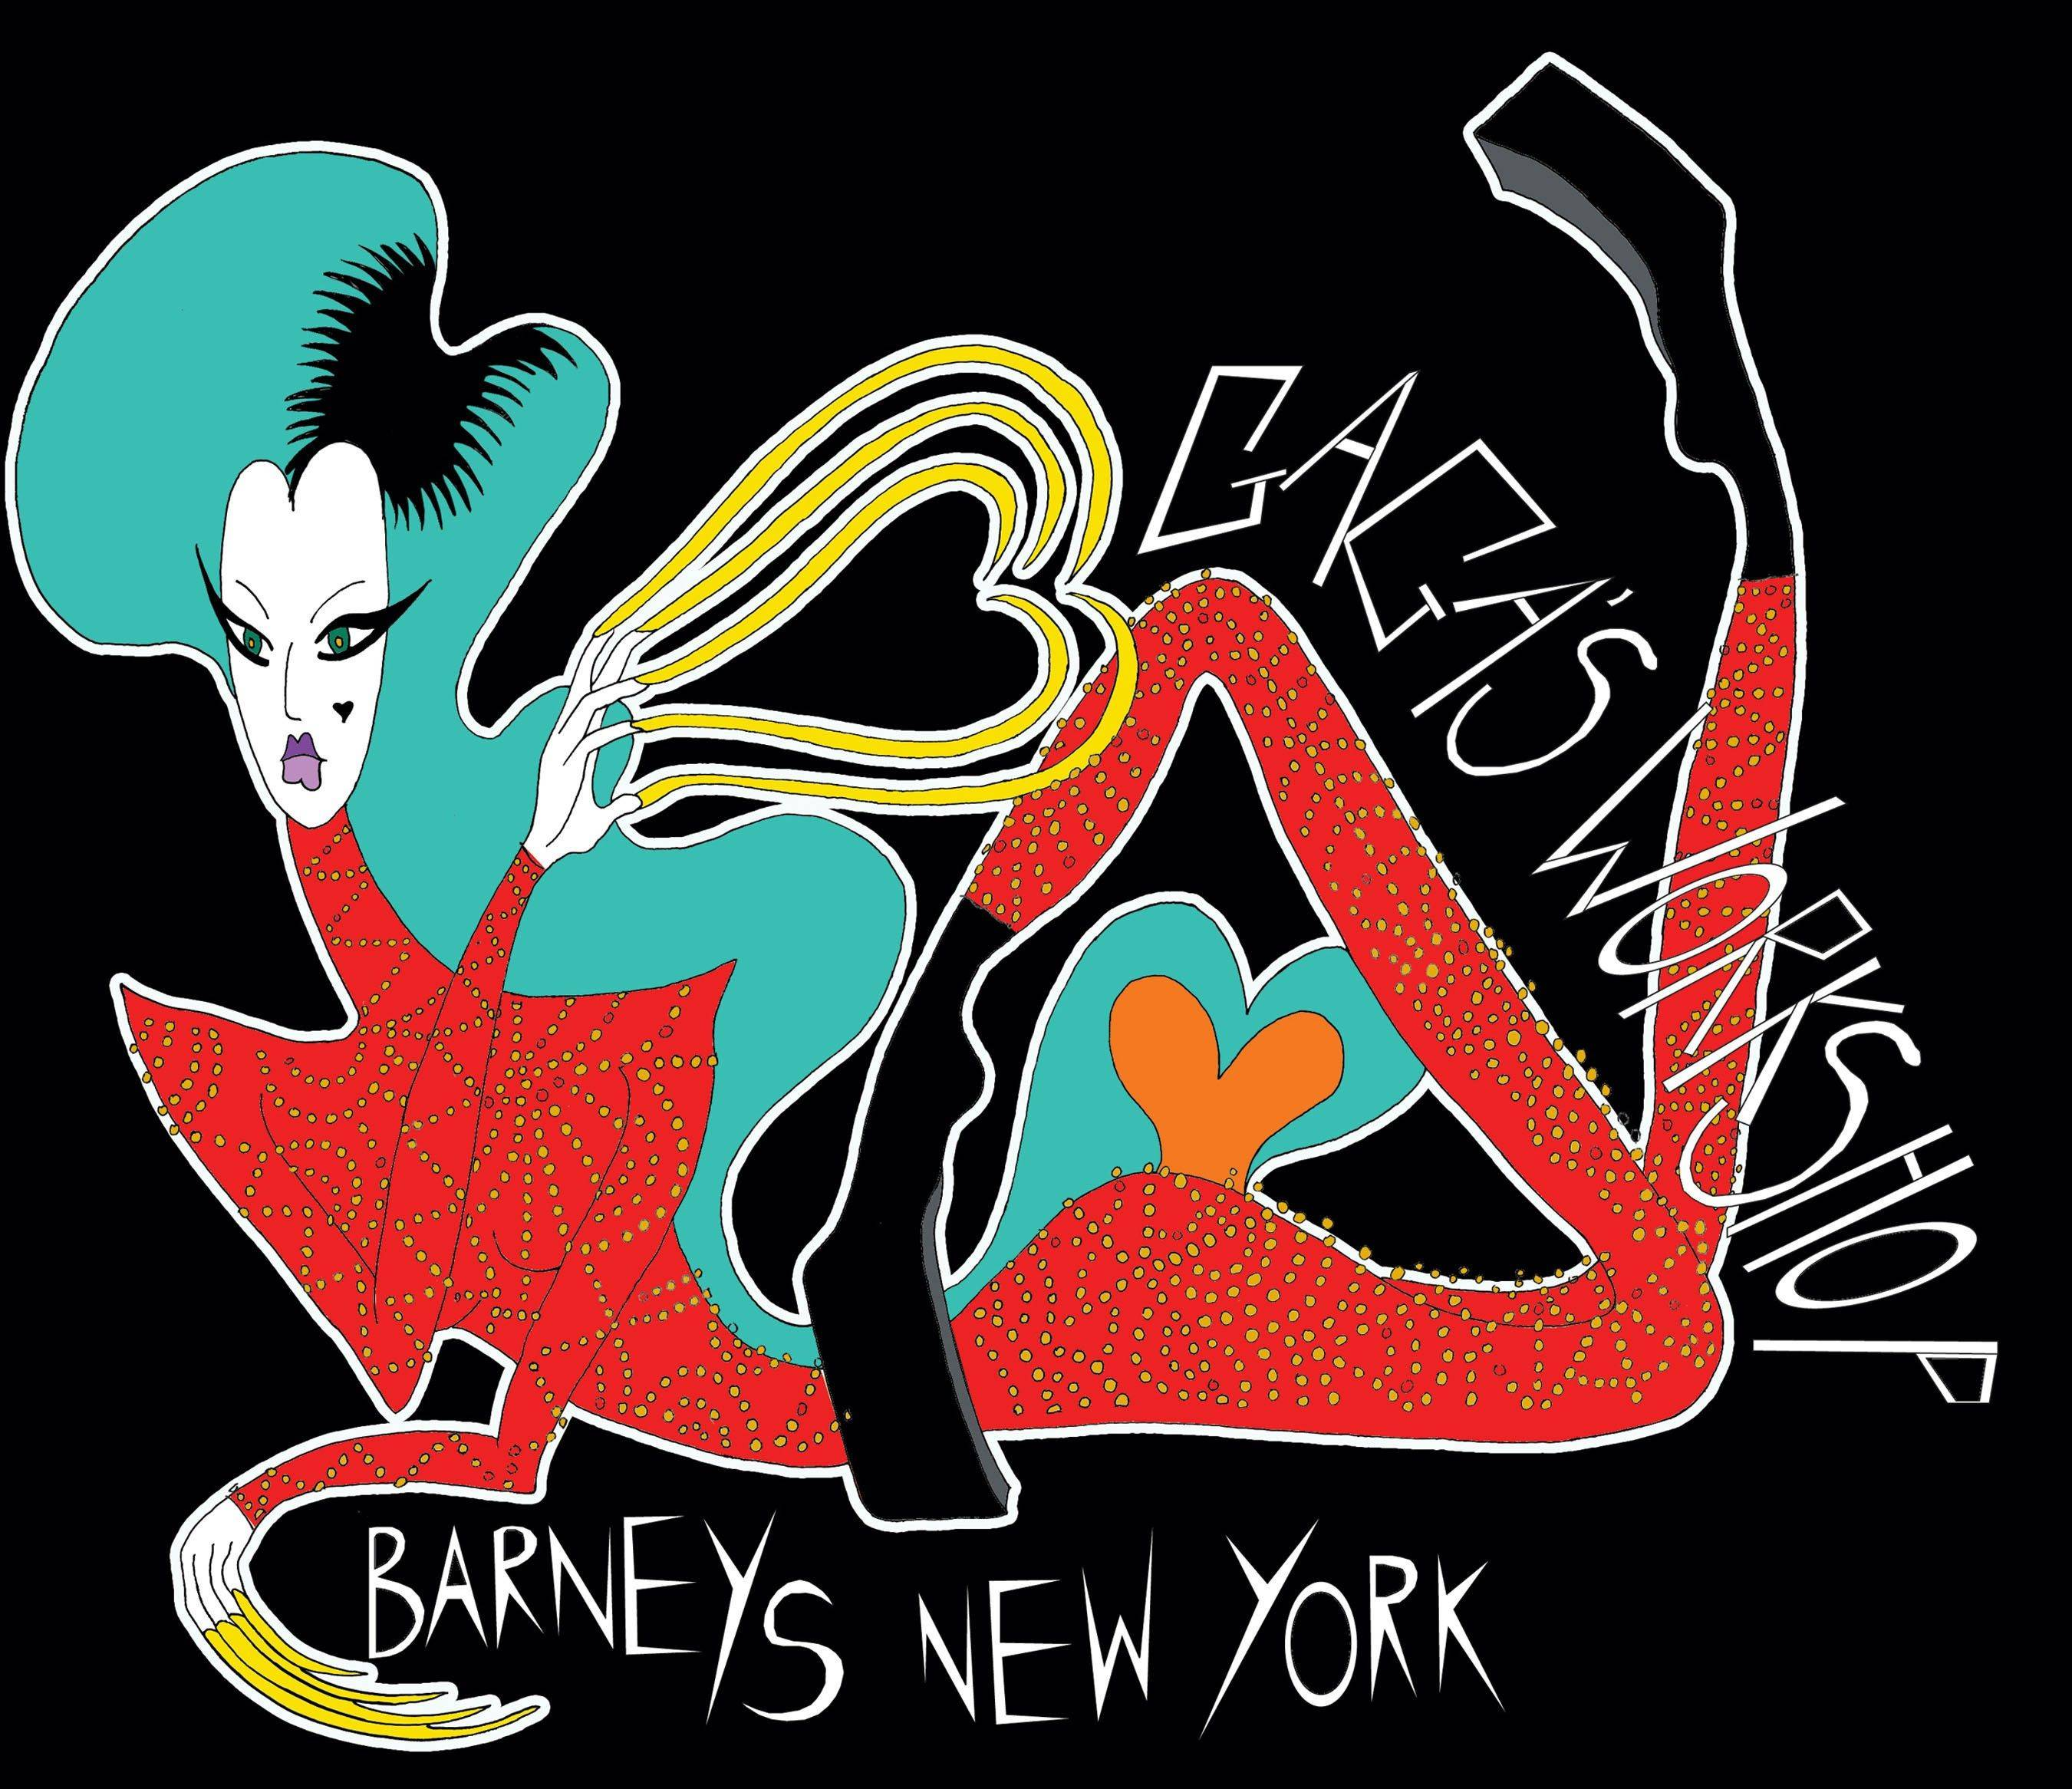 Artwork is shown from the Barneys New York and Lady Gaga Holiday Campaign. The singer and her team are going to reinterpret Santa�s workshop and put it on display at Barneys. She�ll get an entire floor and take over the coveted windows starting in mid-November at the retailer�s flagship Madison Avenue store.